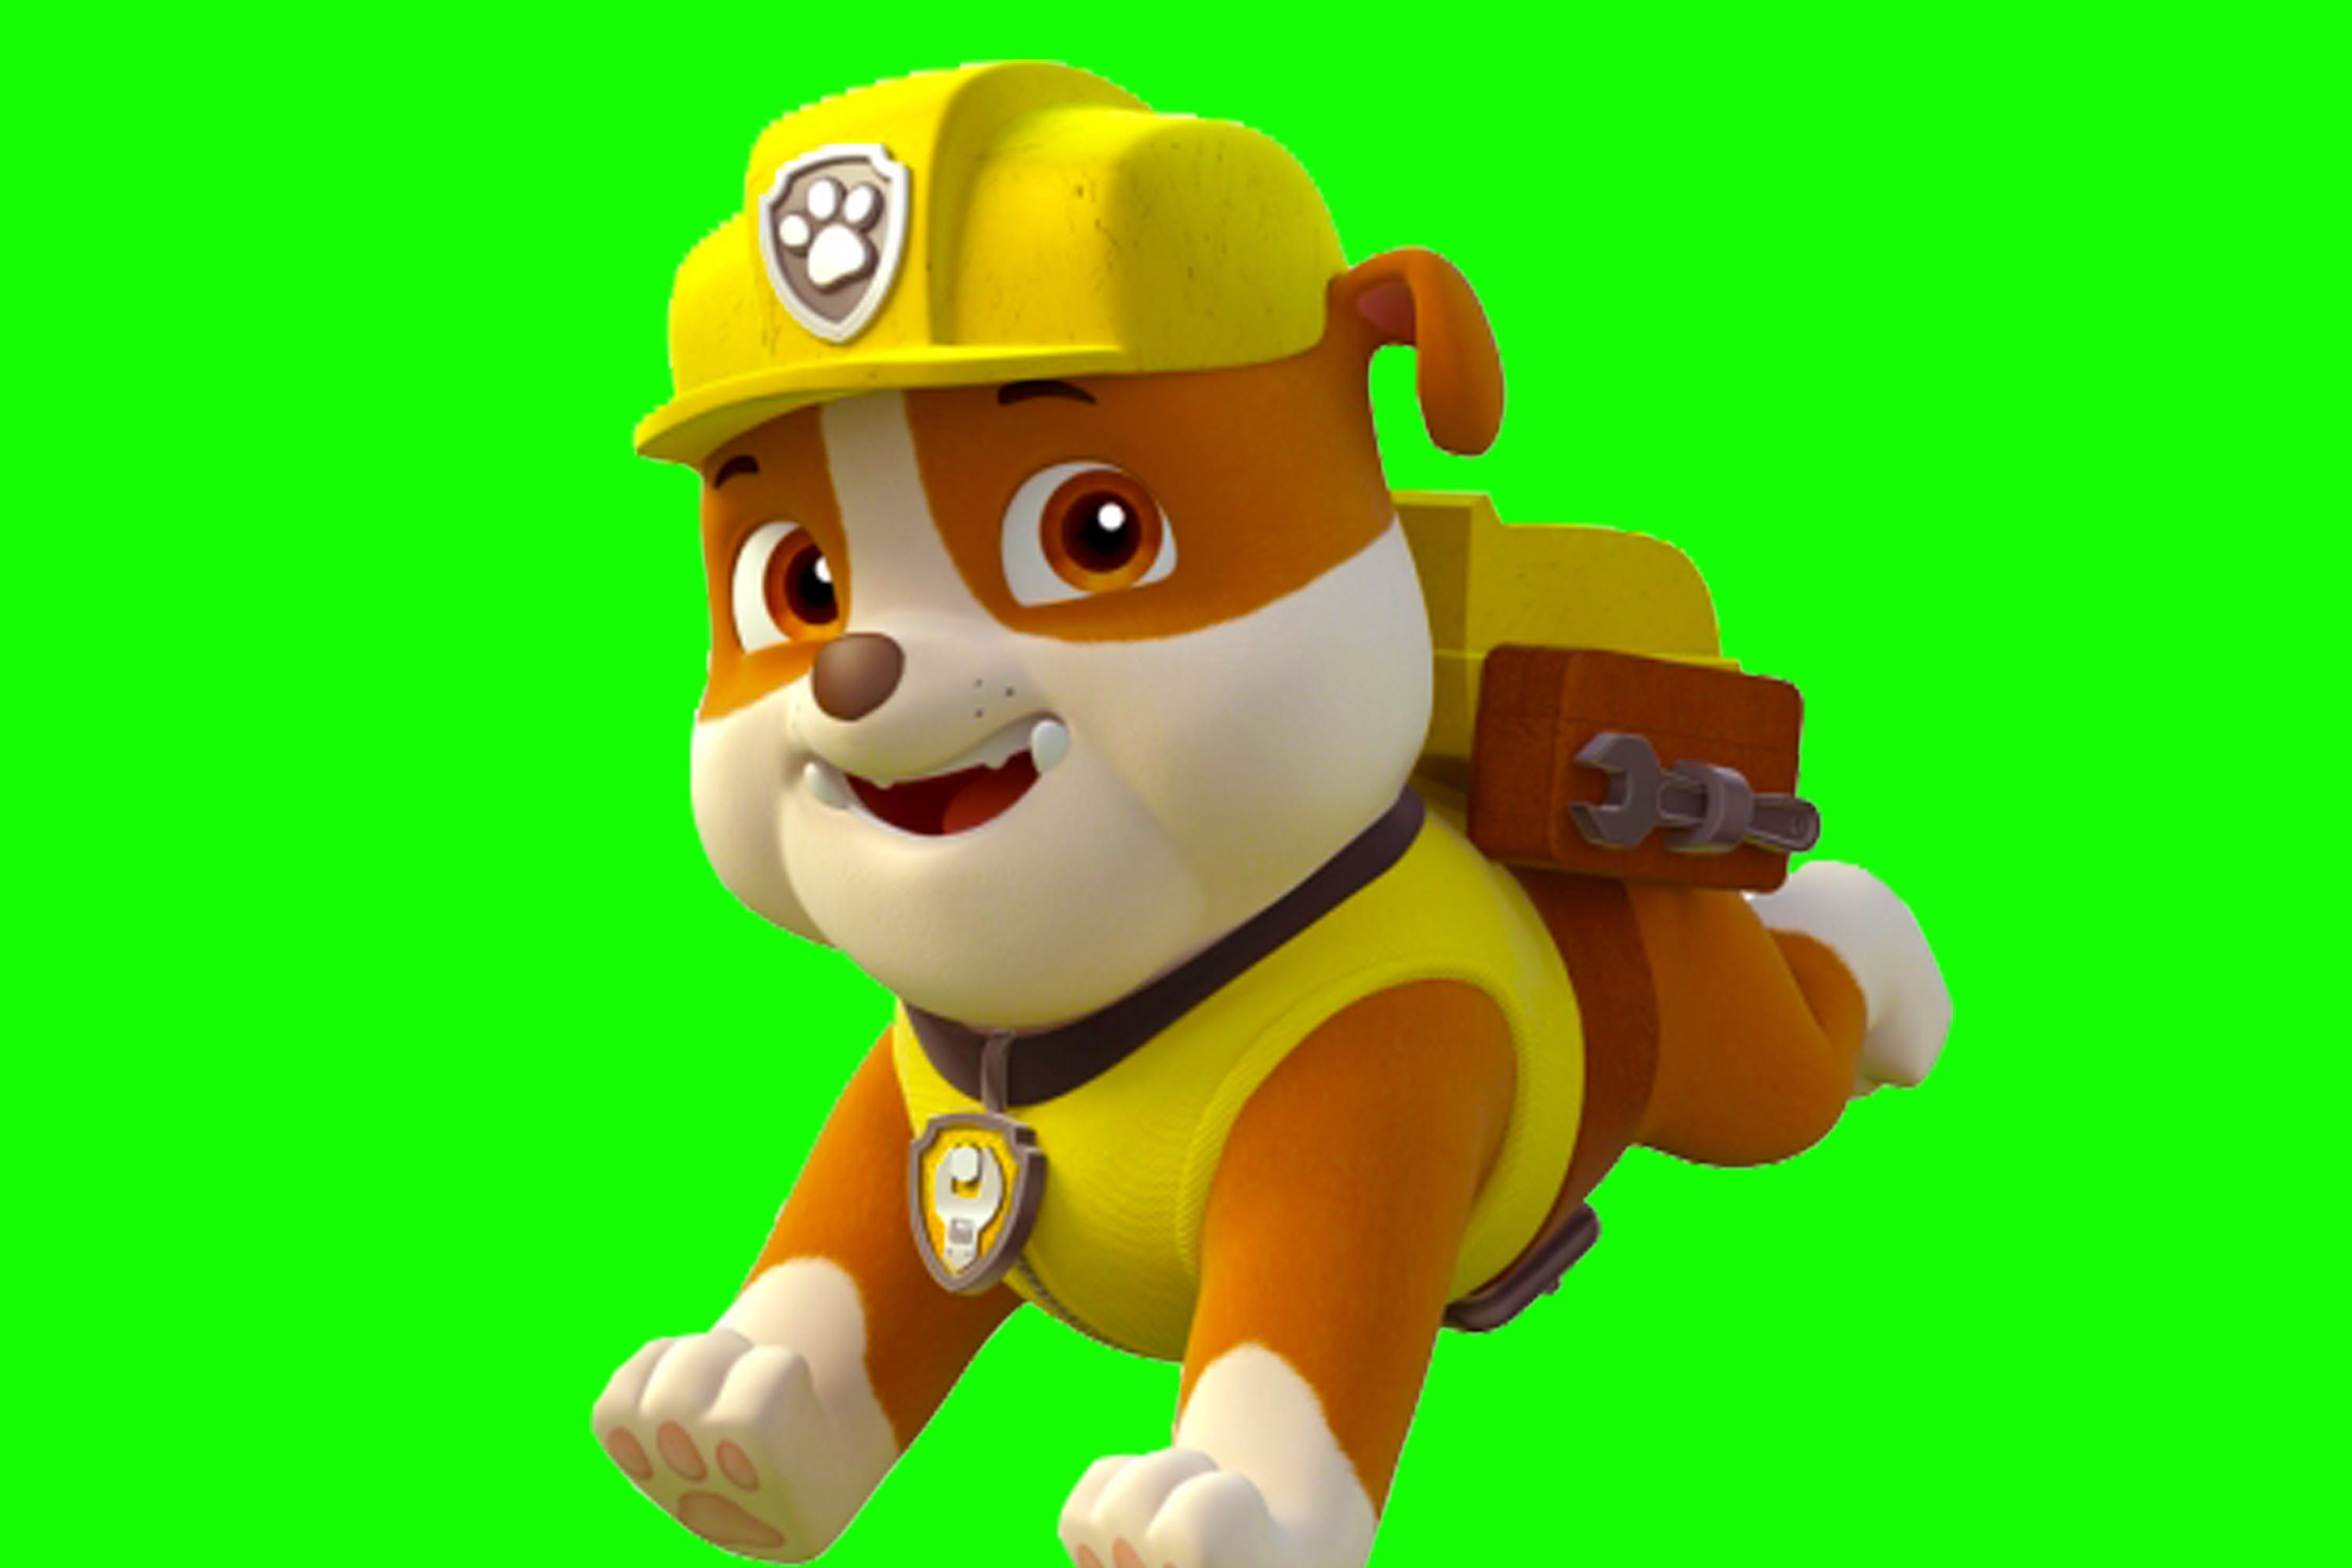 Making Rubble From Paw Patrol Paw Patrol Birthday Paw Patrol Characters Rubble Paw Patrol